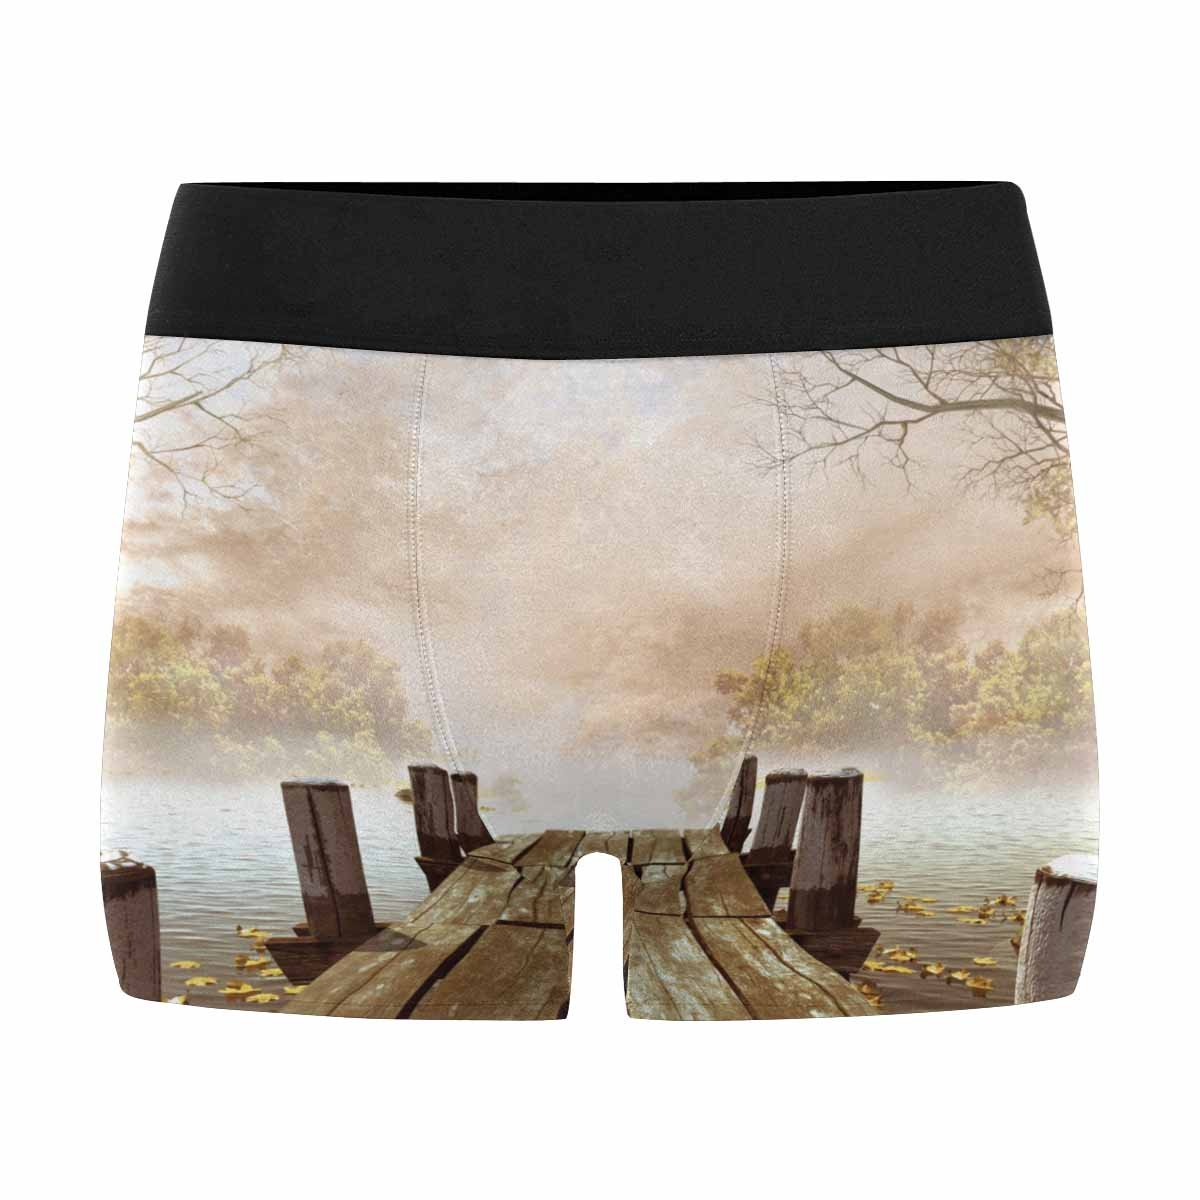 XS-3XL INTERESTPRINT Mens Boxer Briefs Underwear Wooden Dock with Leaves and Tree Branches